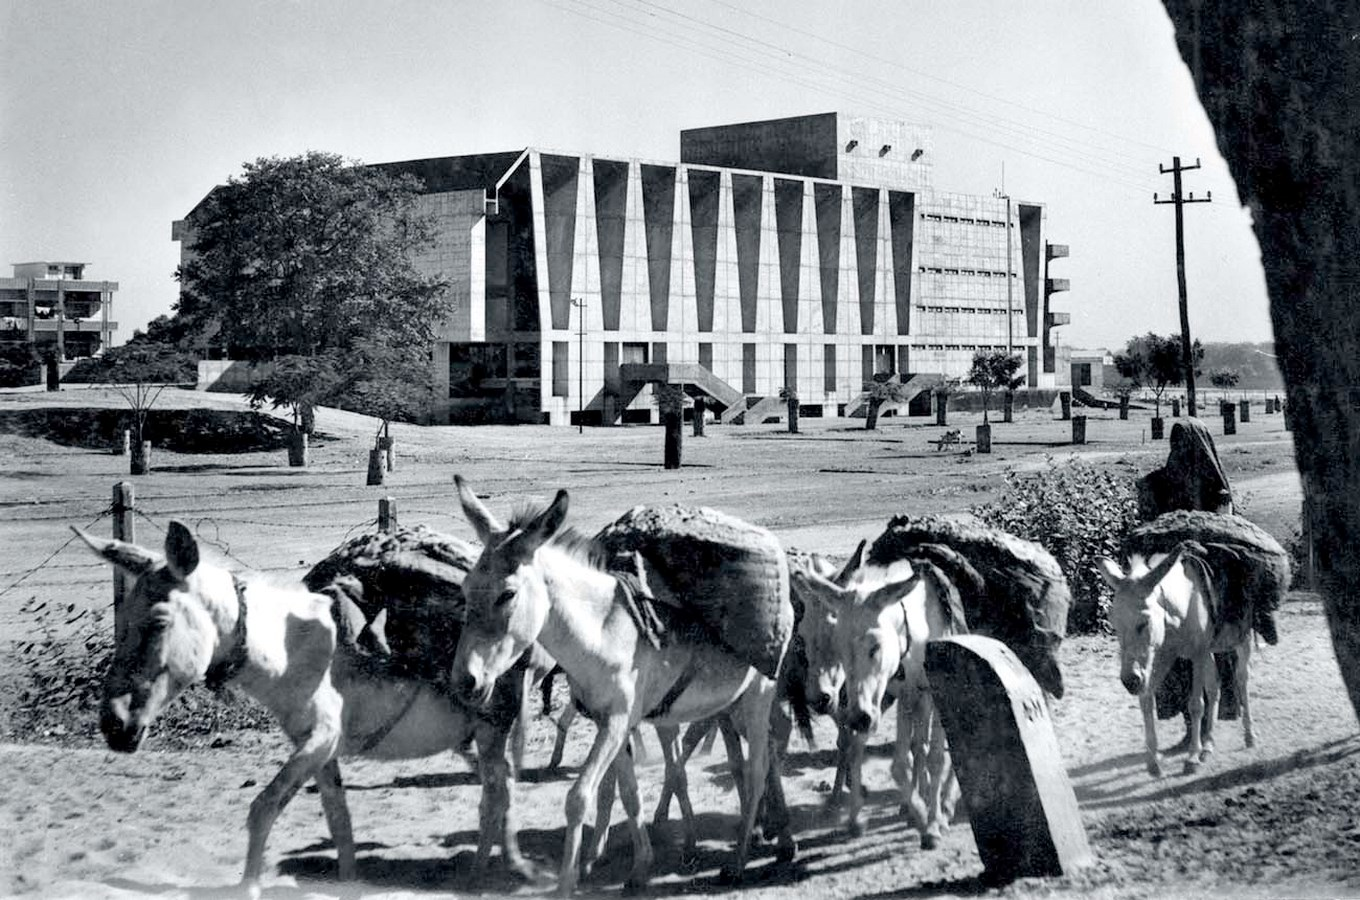 View of the building - Tagore Memorial Theatre